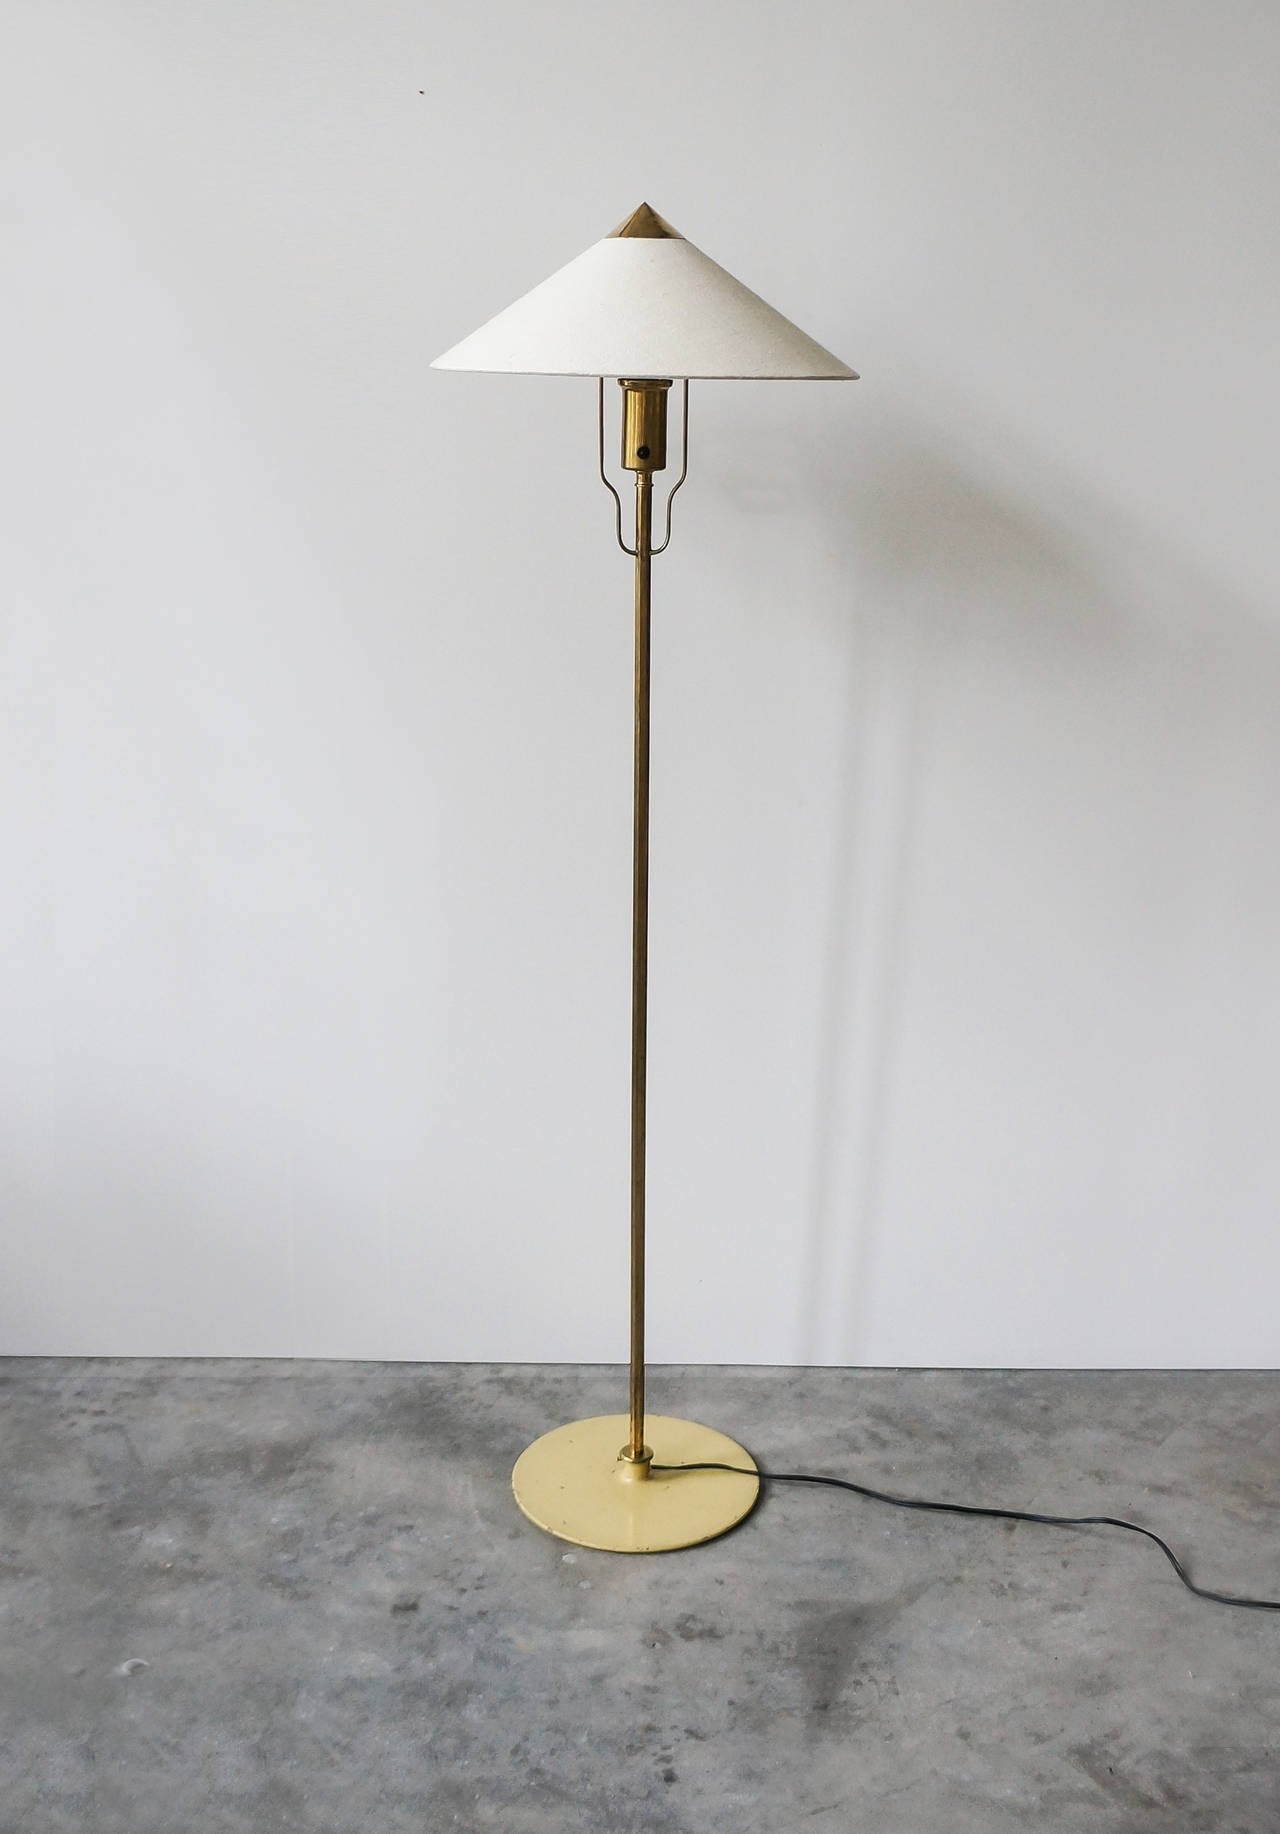 Paavo Tynell Floor Lamp, Model 5762 Manufactured by Taito Oy, Finland - The Exchange Int